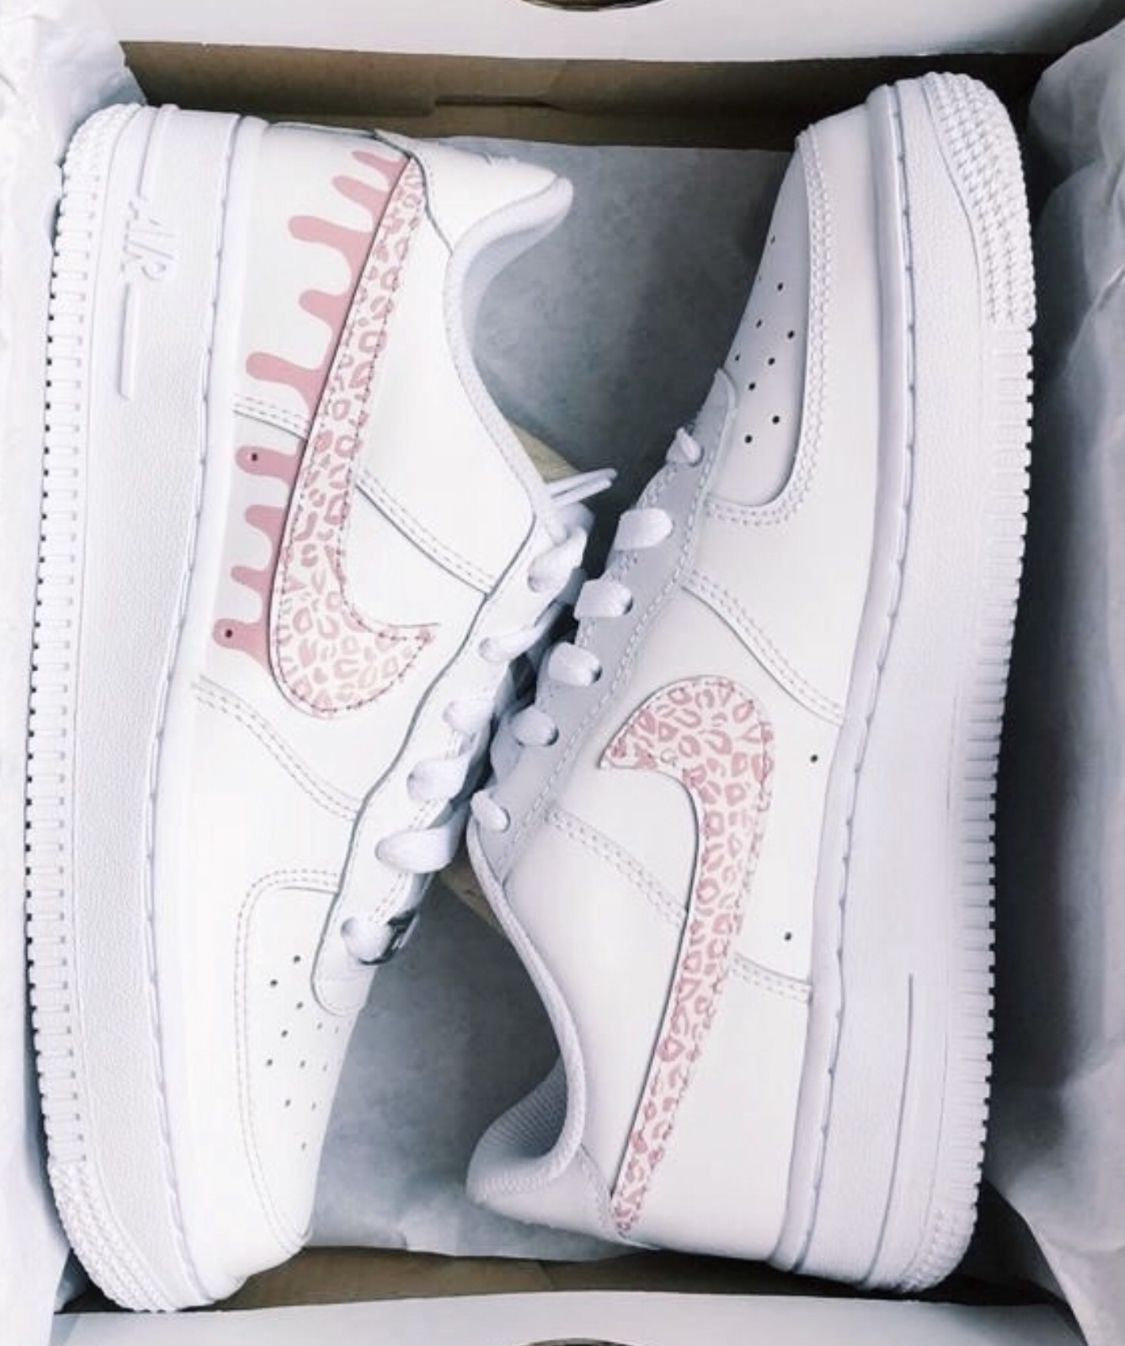 Reflective Butterfly Nike Air Force 1 Custom Sneakers in